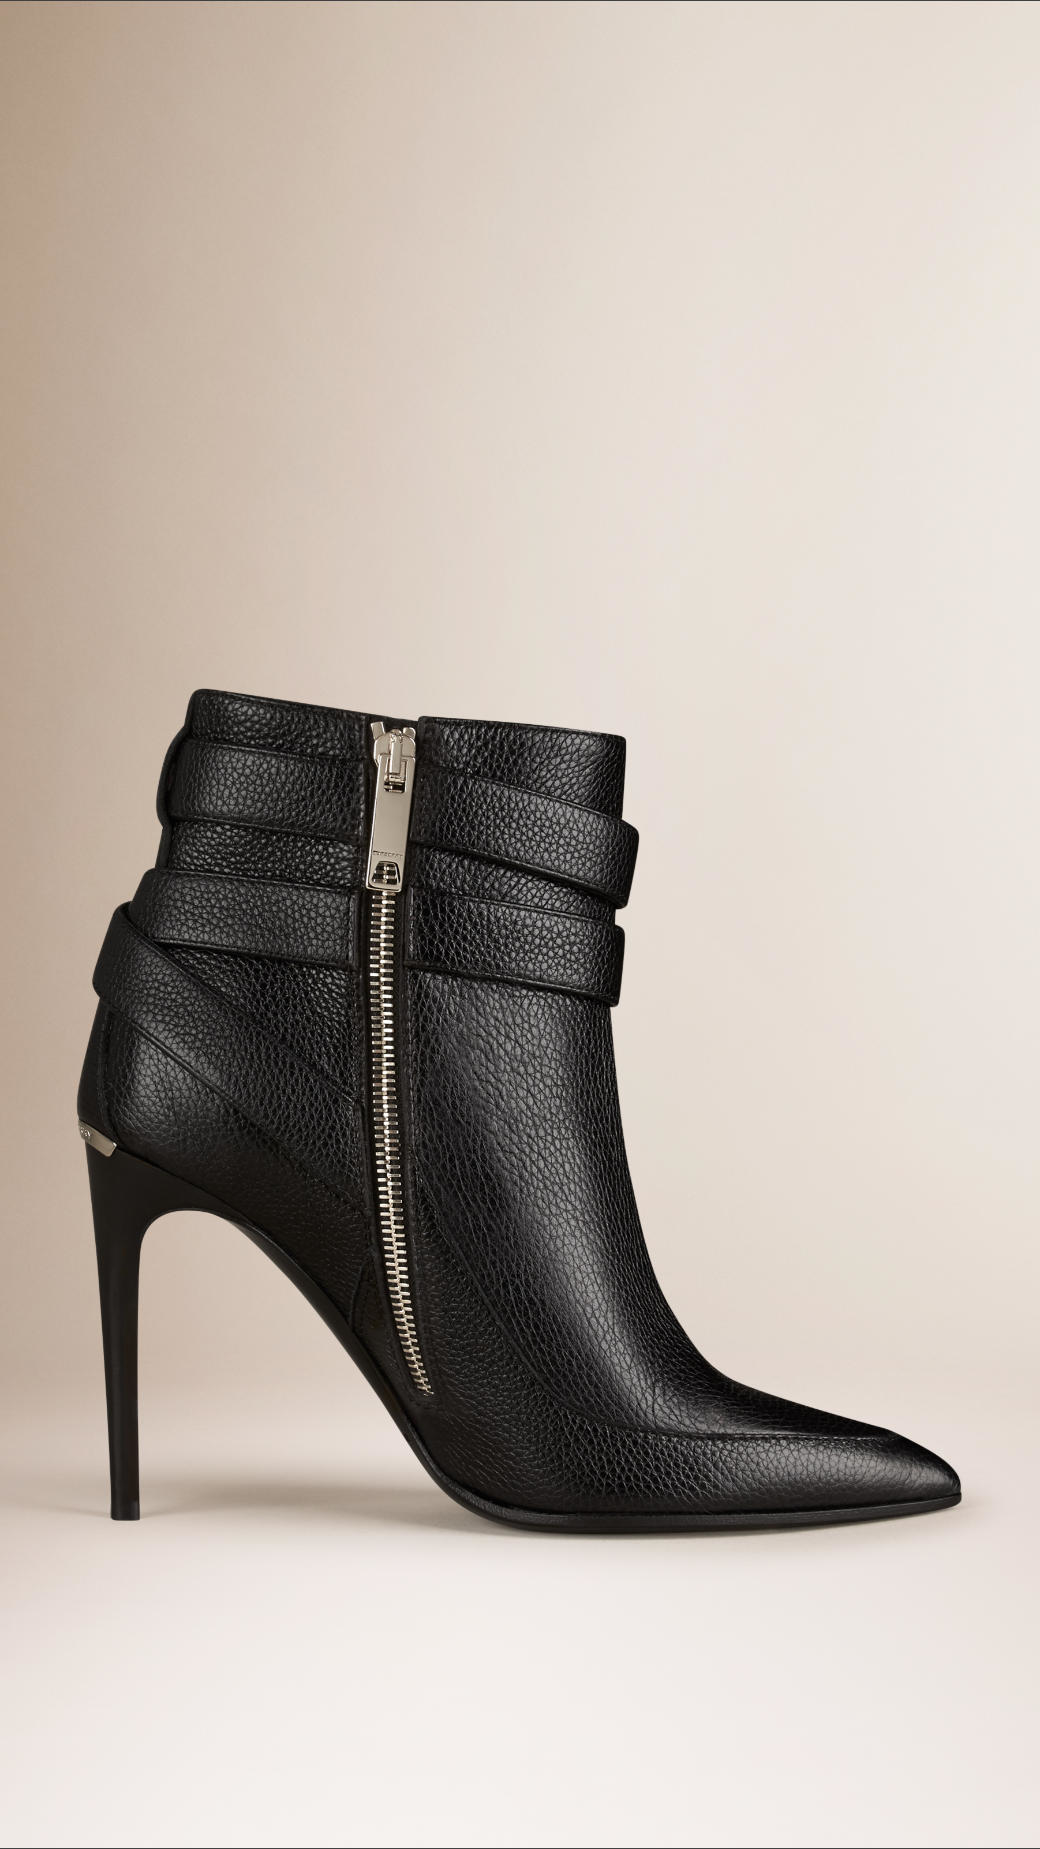 Burberry Buckle Detail Python Ankle Boots in Black